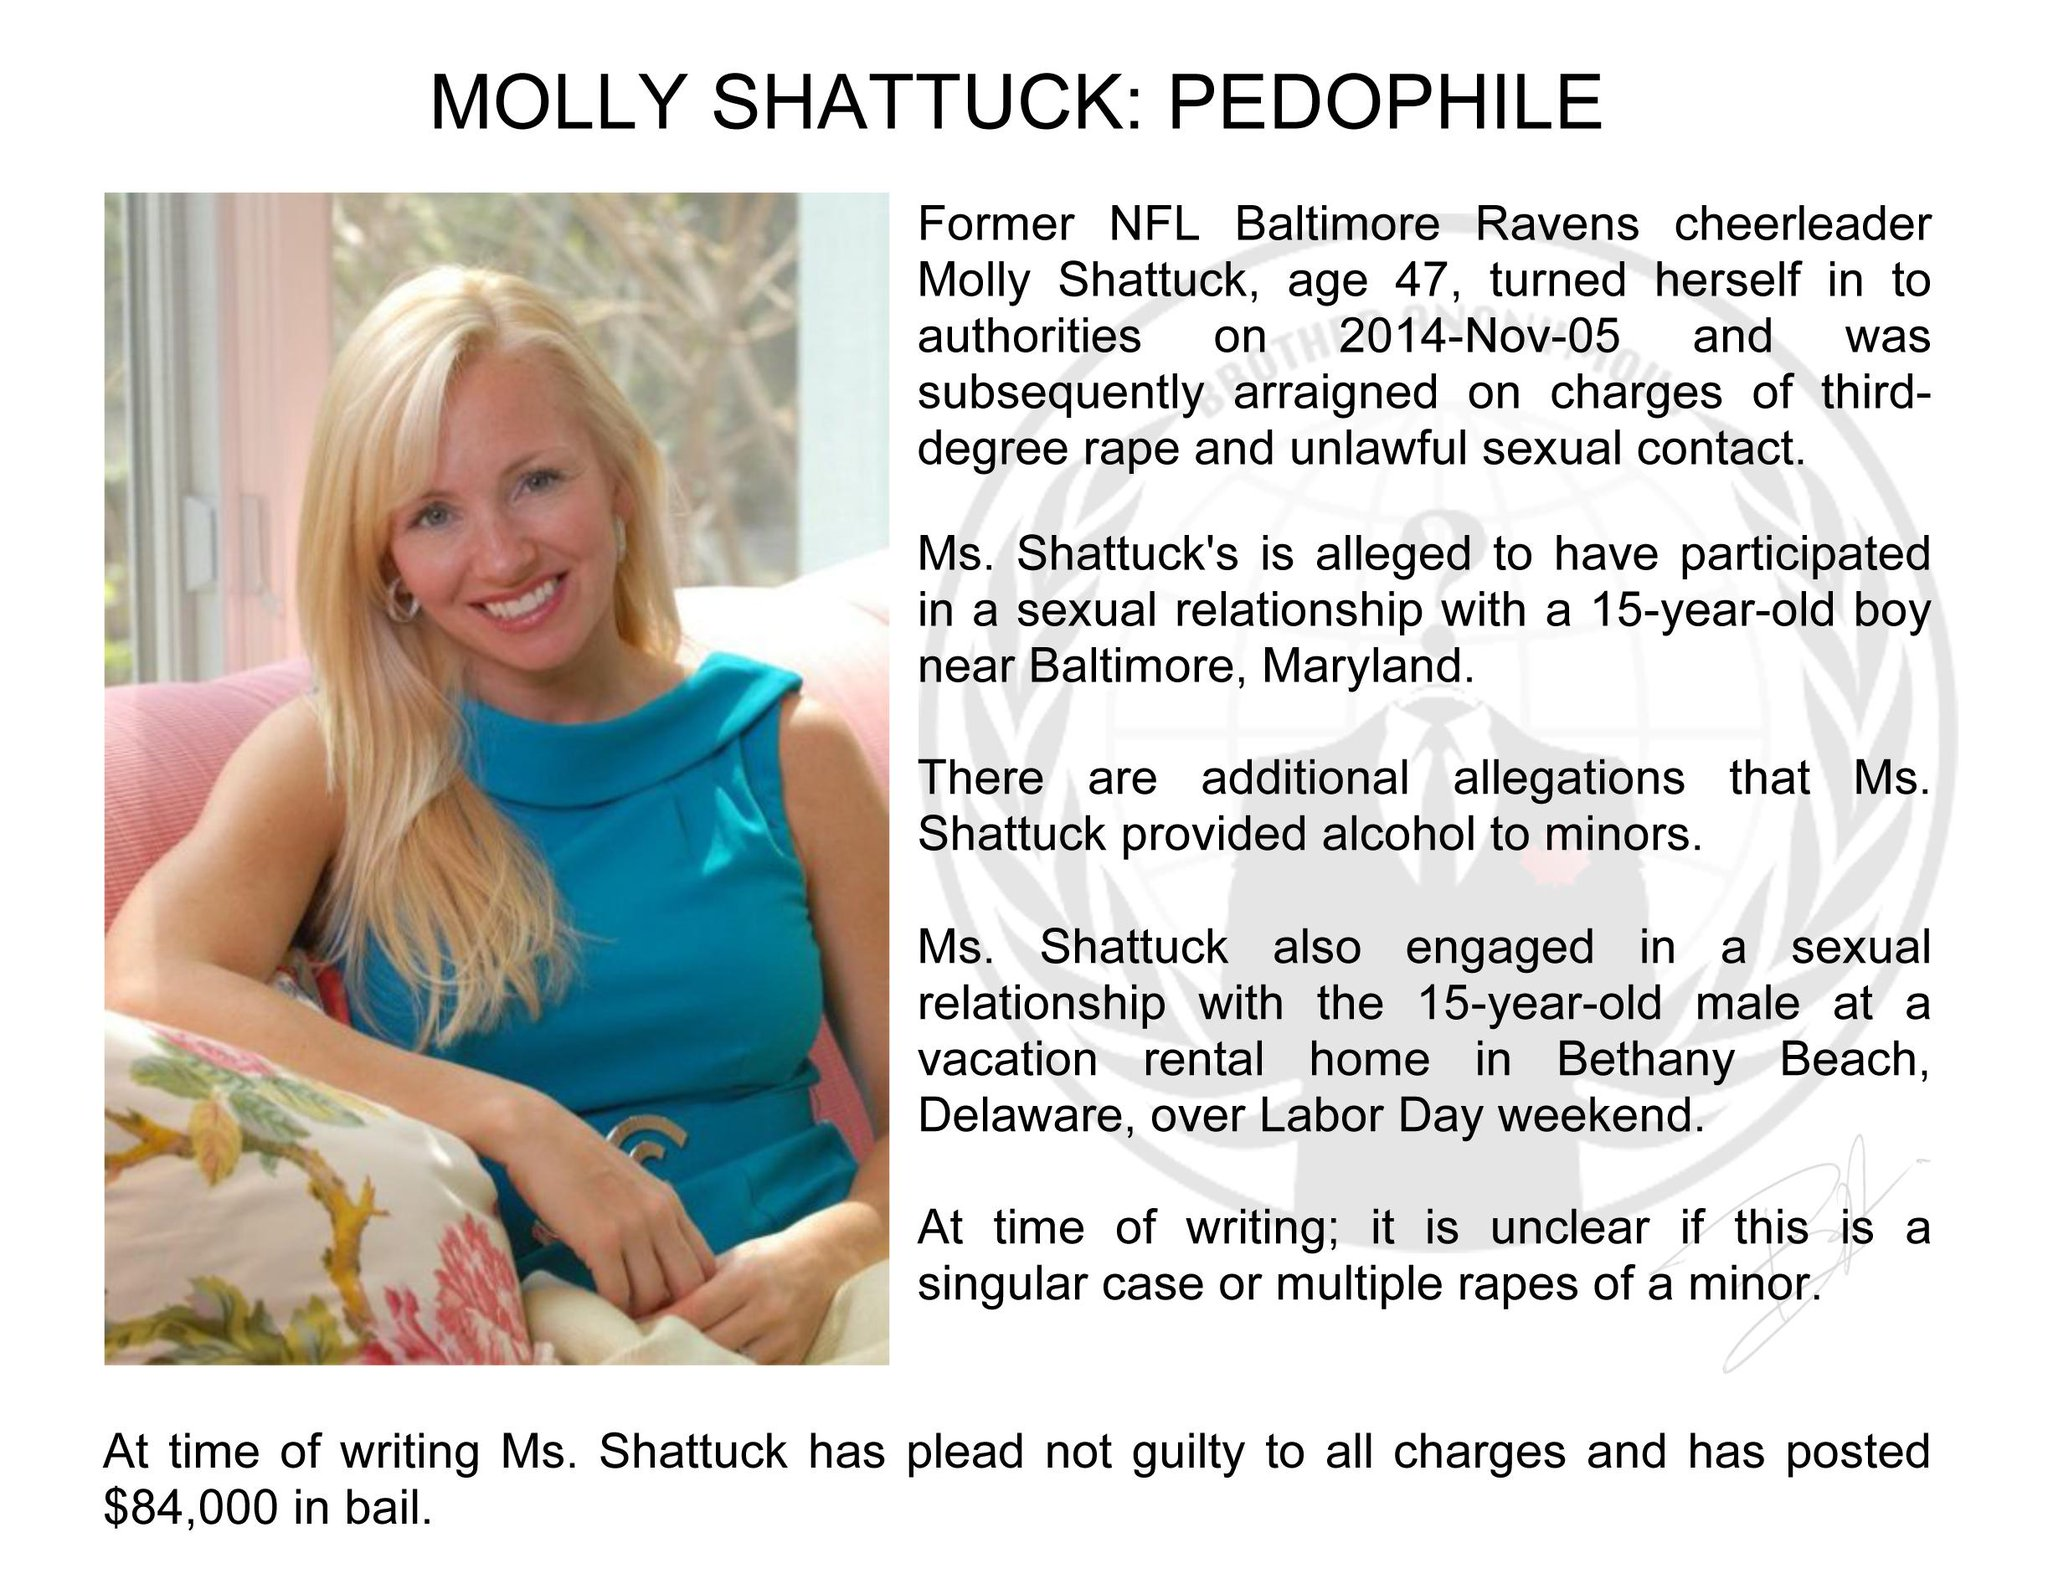 Brother Anonymous On Twitter Former Nfl Cheerleader Molly Shattuck Repeatedly Raped 15 Year Old Boy Convicted Pedophile Paedophile Http T Co Wlojzzjtak